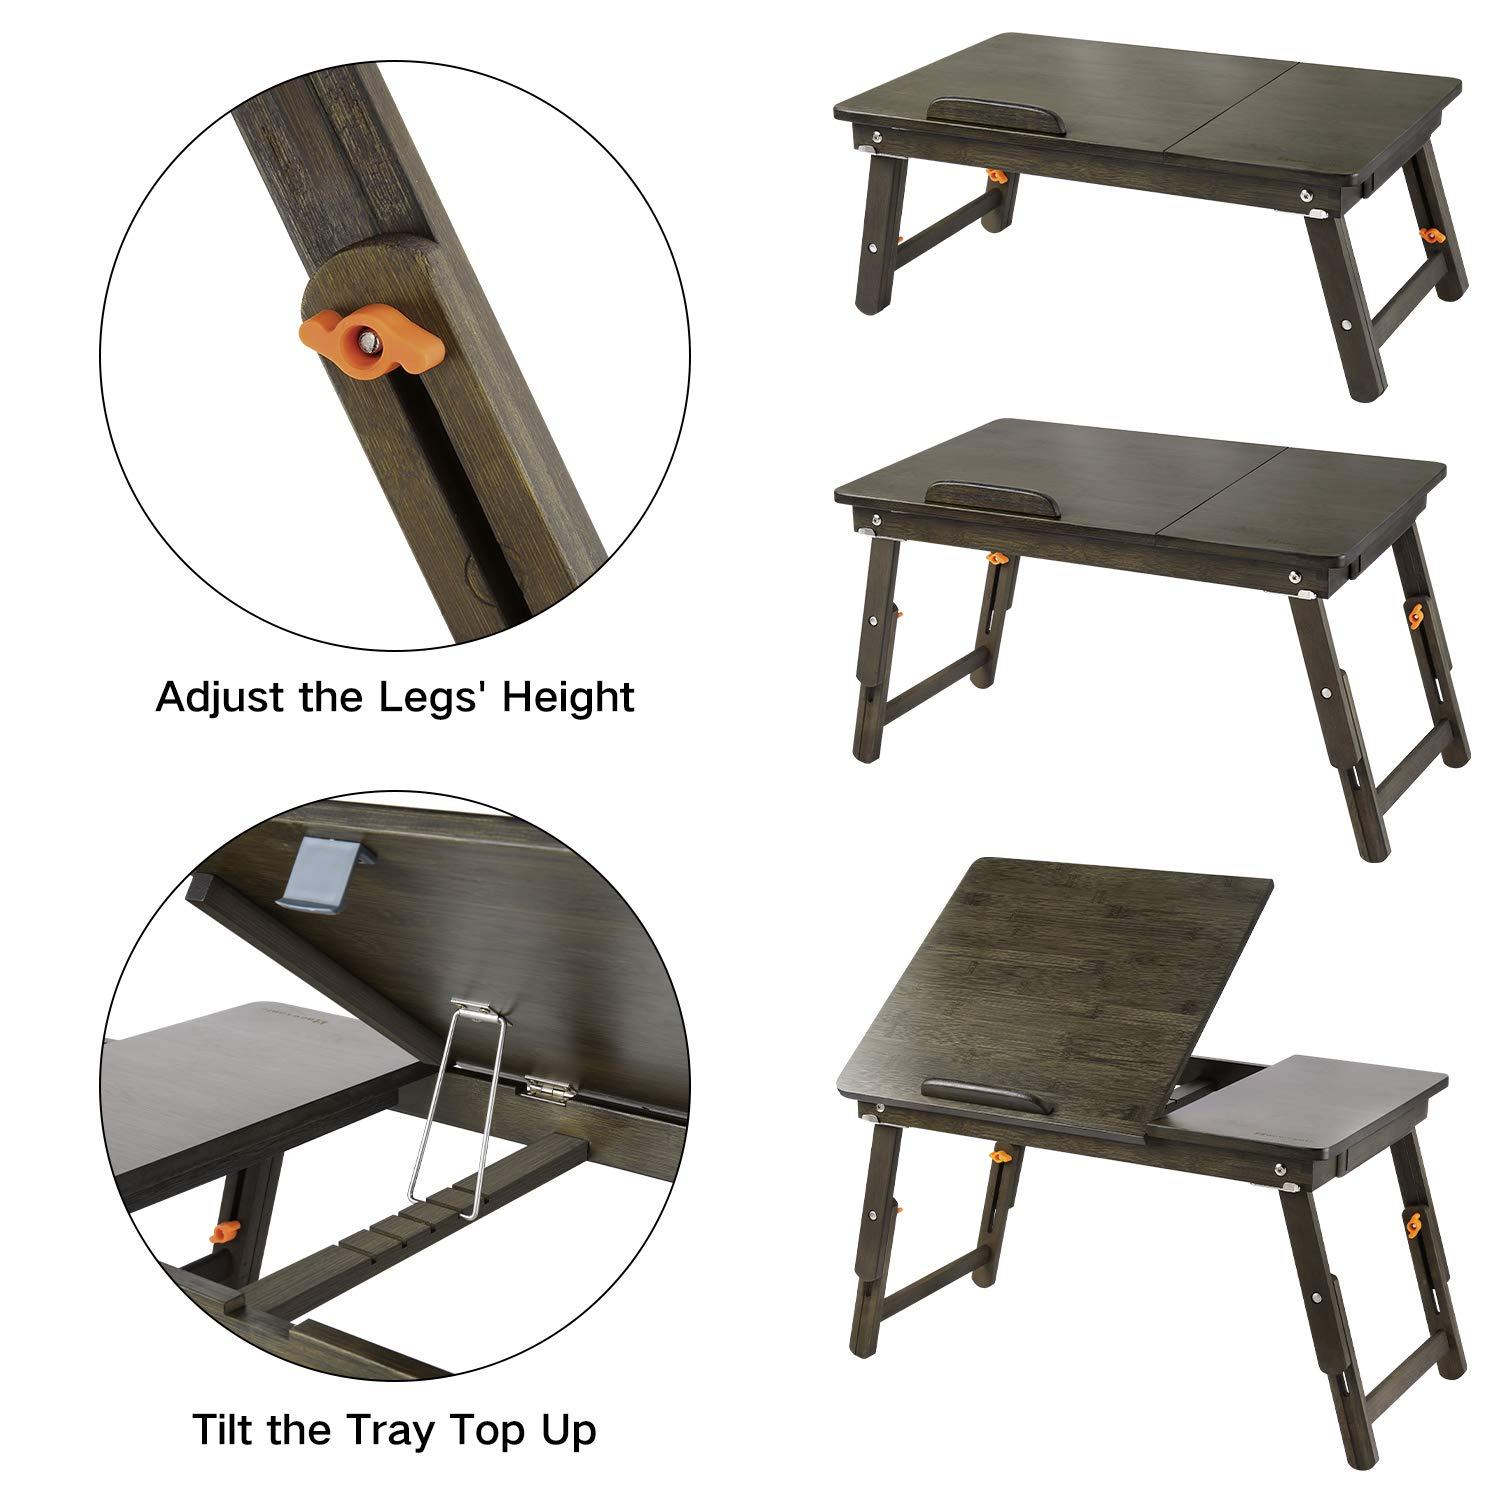 Laptop Desk Large Nnewvante Table Adjustable 100% Bamboo Foldable Breakfast Serving Bed Tray Table w' Tilting Top Drawer-Retro by NNEWVANTE (Image #4)